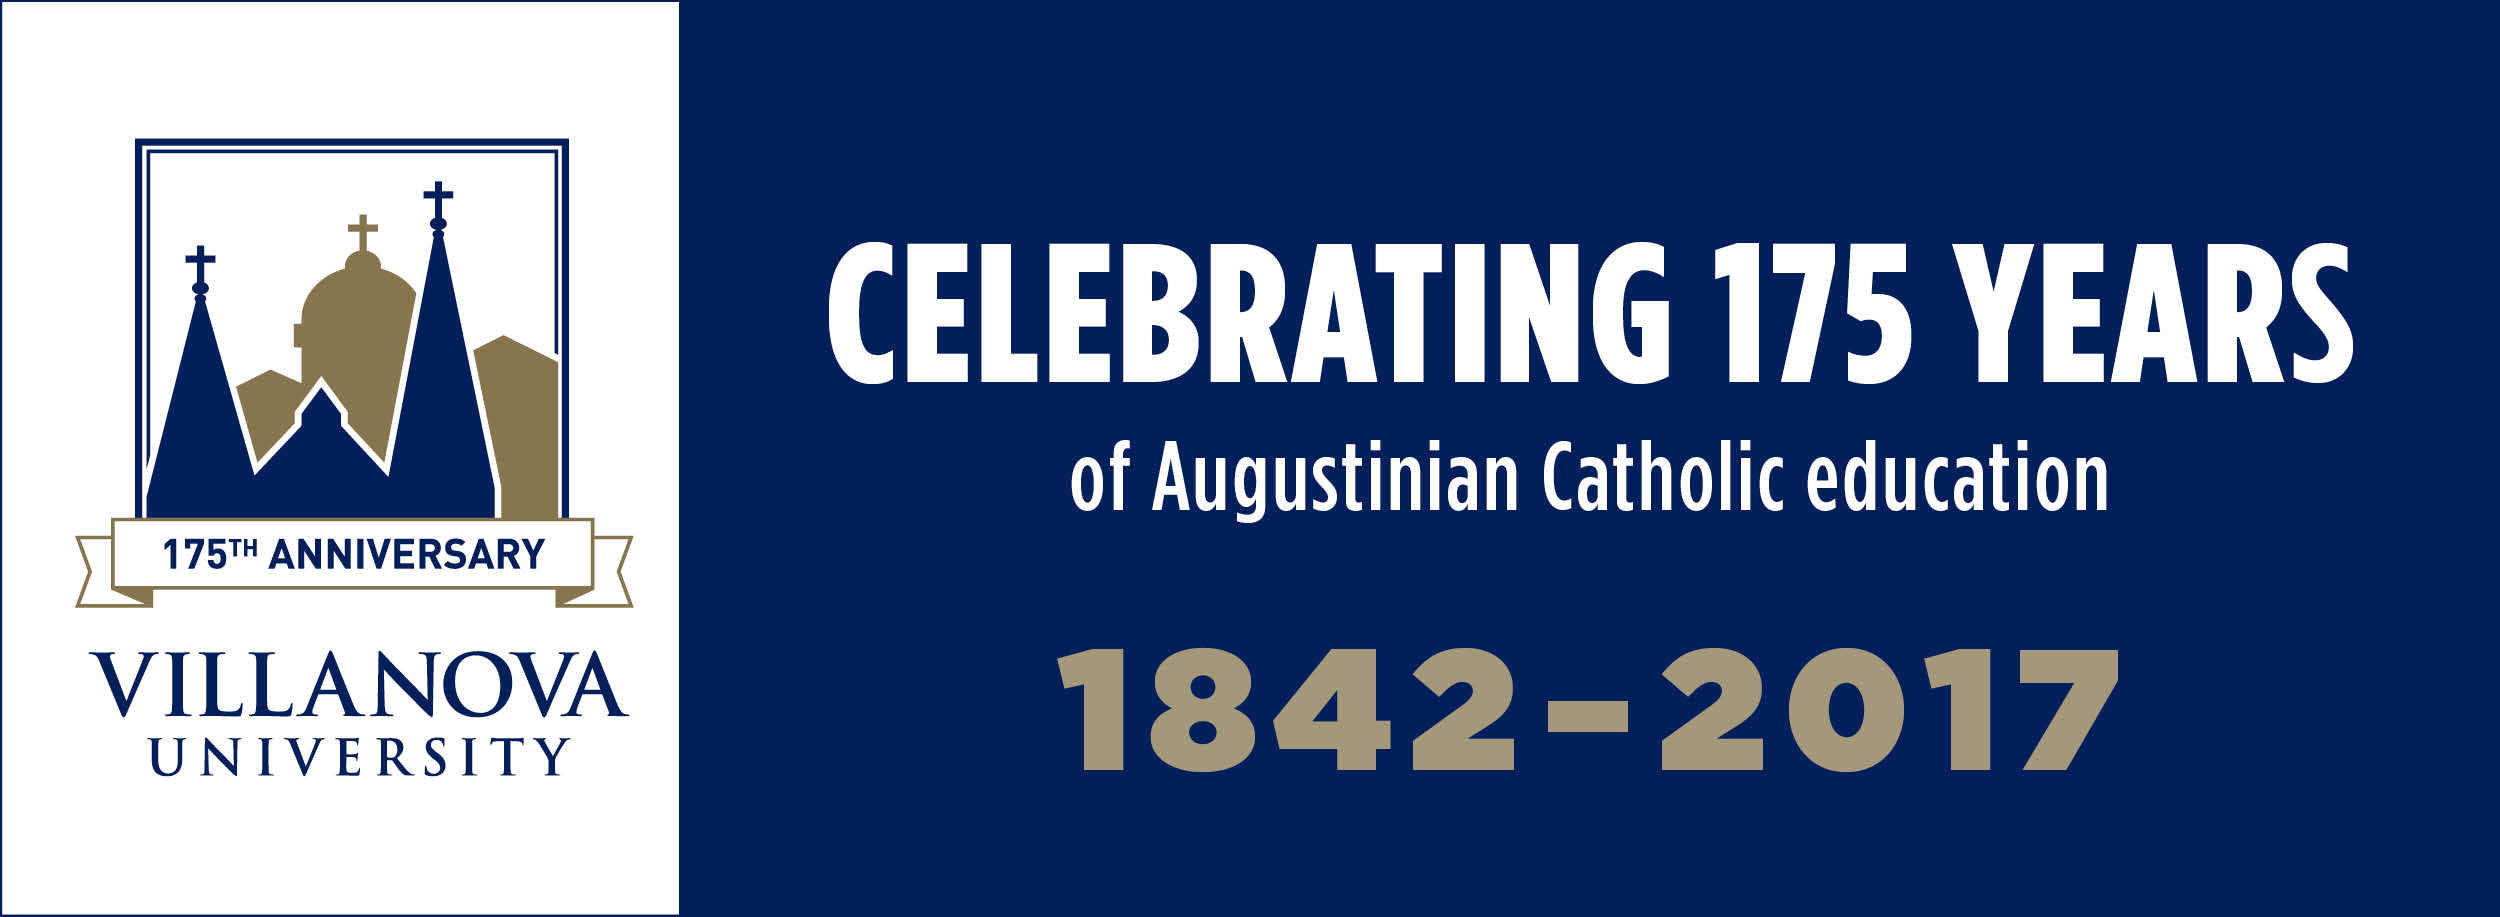 Celebrating 175 Years of Augustinian Catholic education